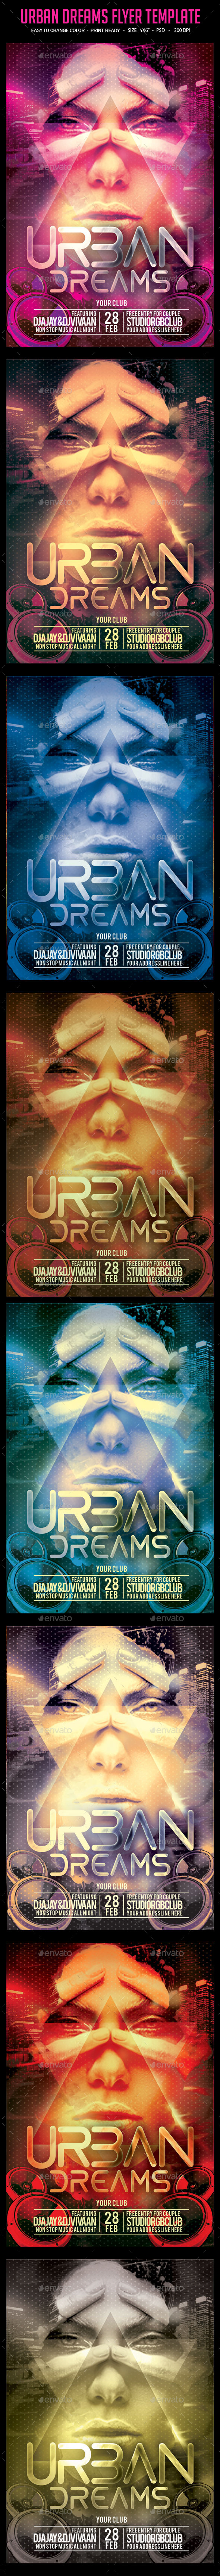 GraphicRiver Urban Dreams Flyer Template 10531936